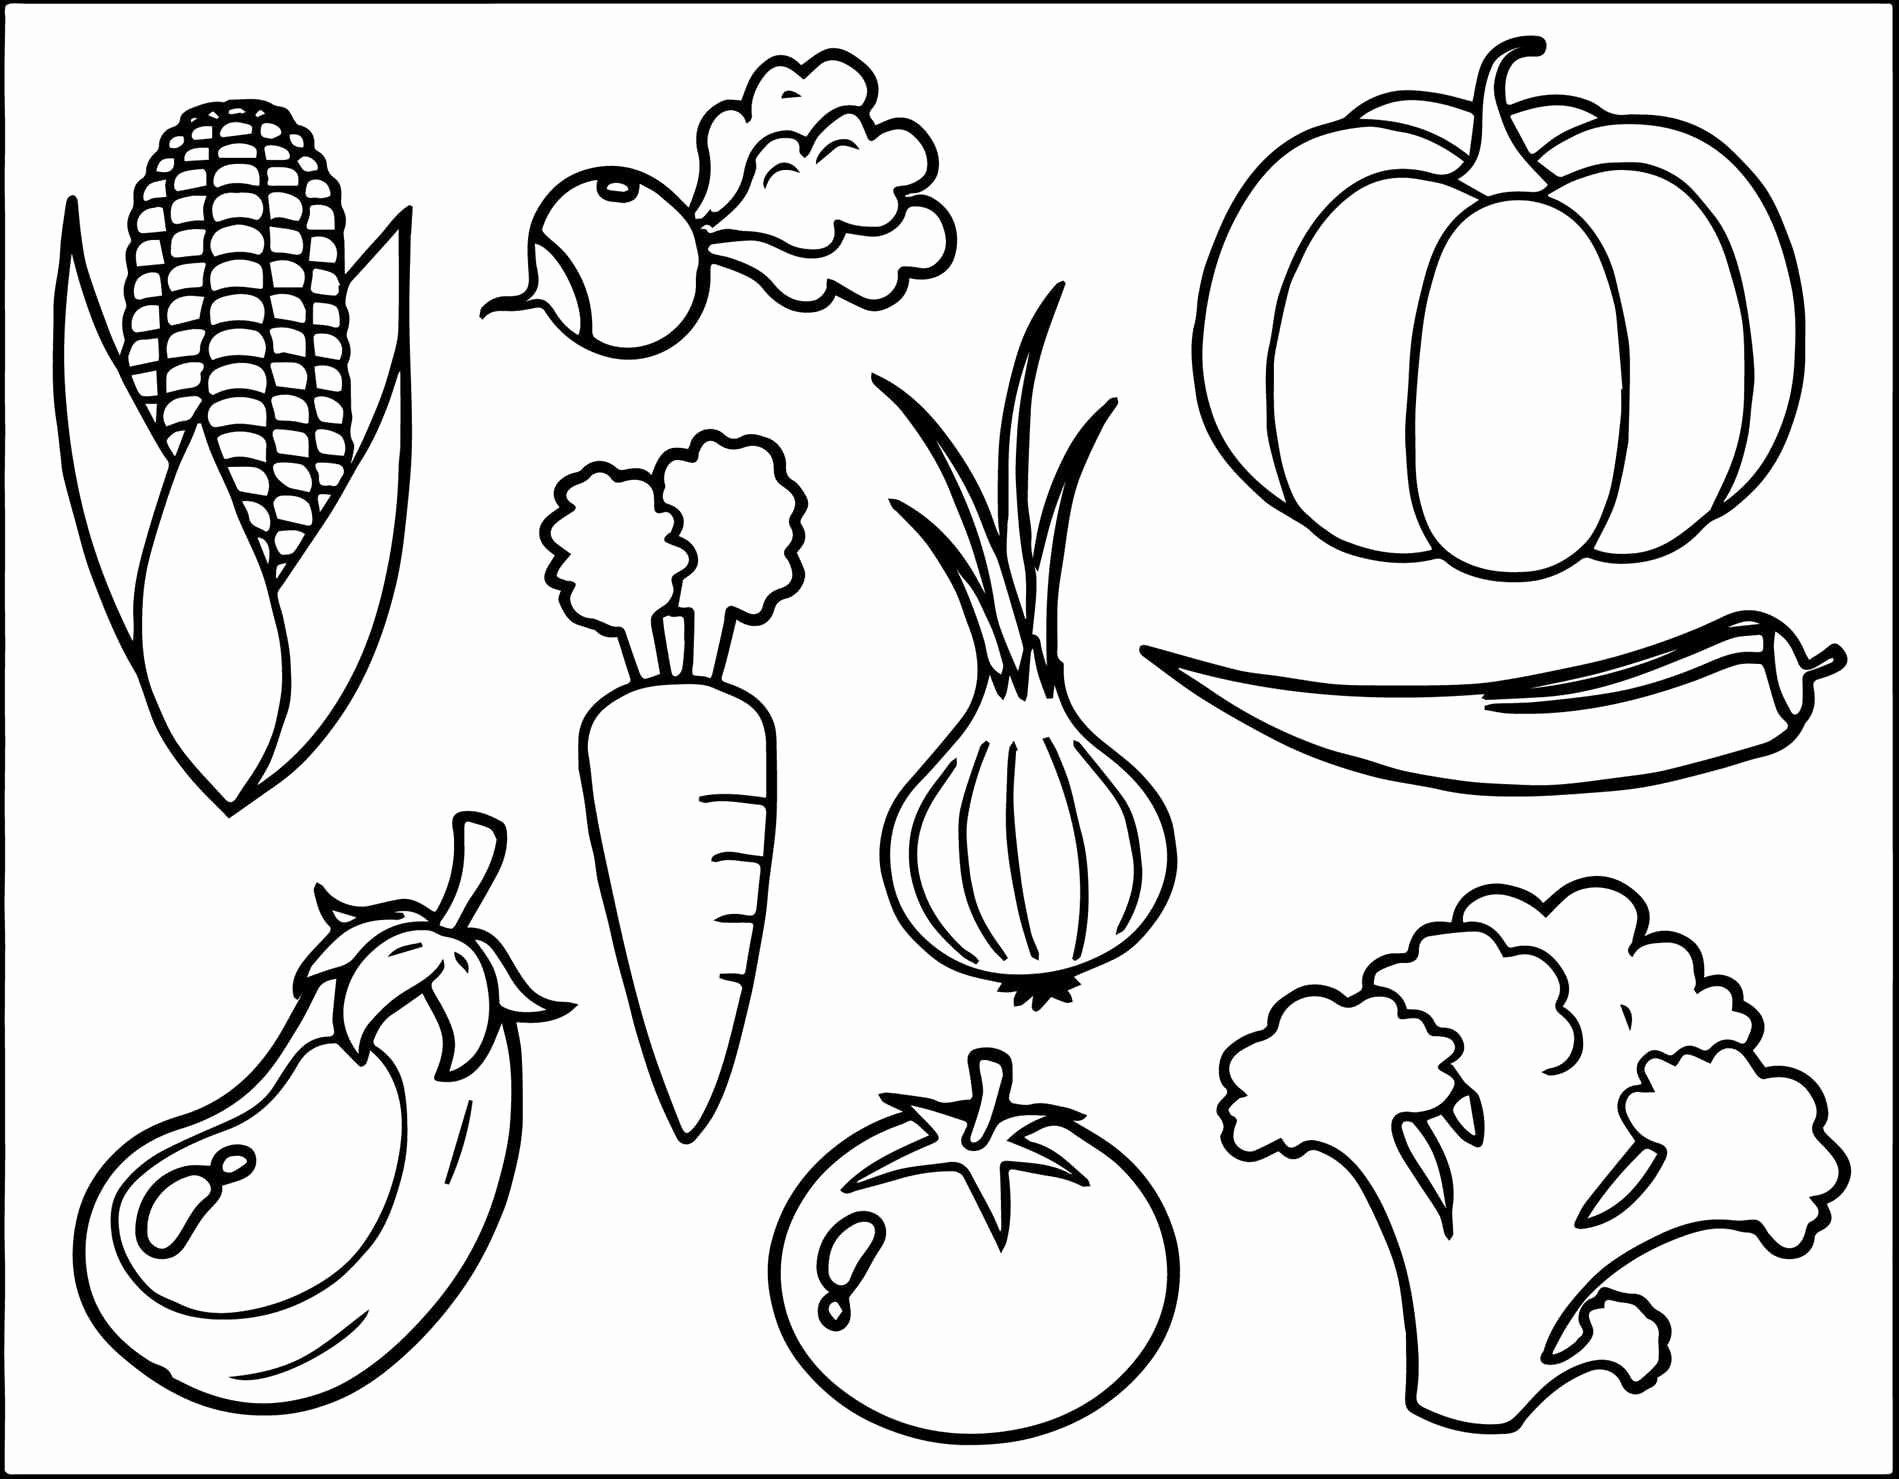 Fruits And Vegetable Coloring Books For Kids